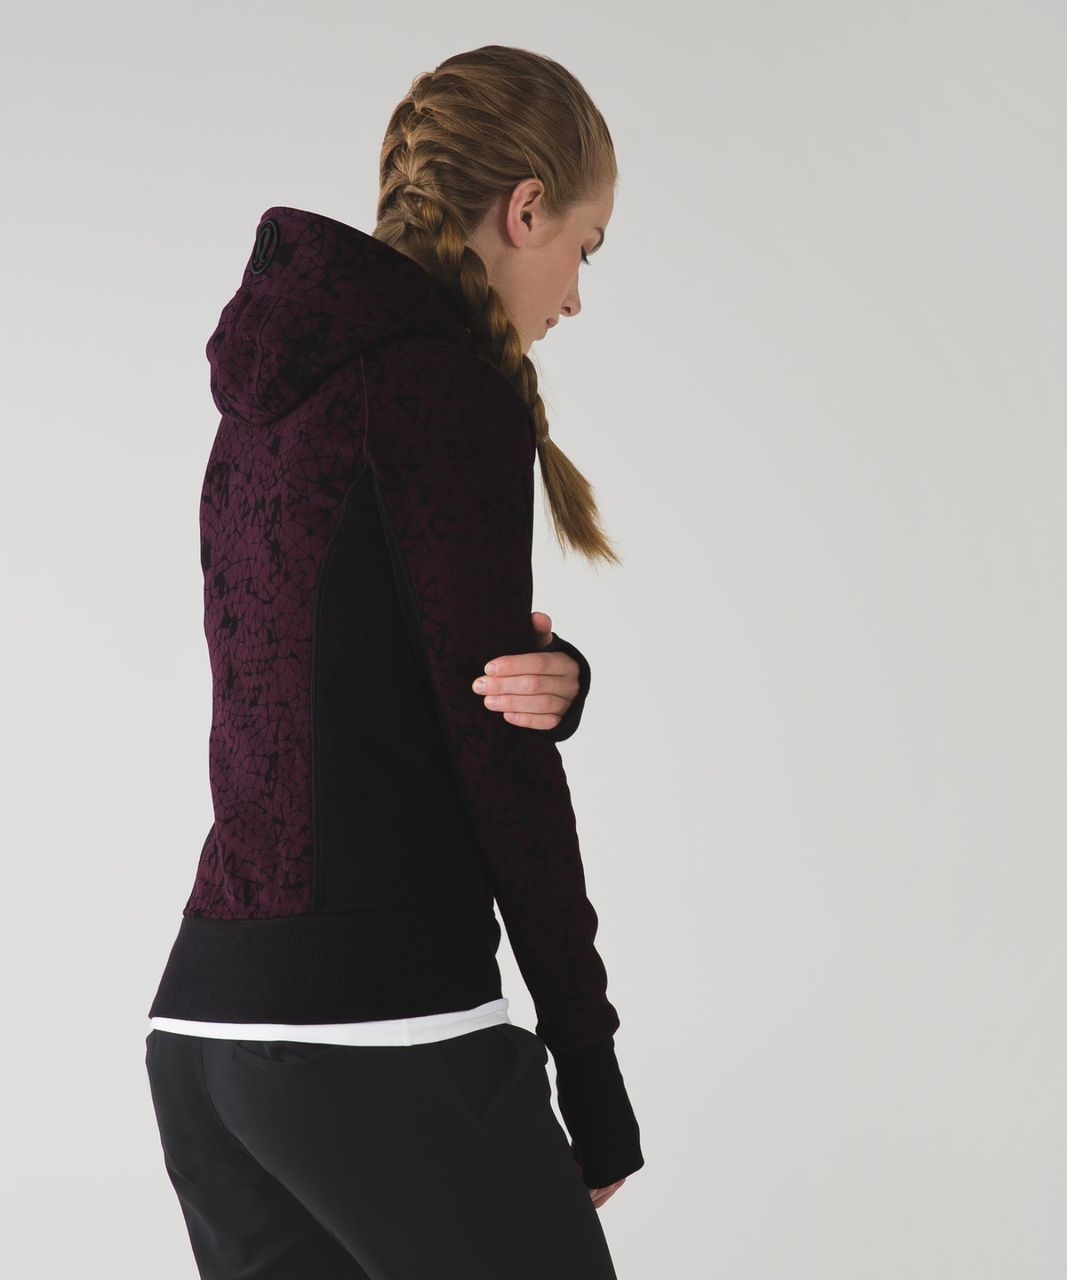 Lululemon Scuba Hoodie II - Star Crushed Black Cherry Black / Black